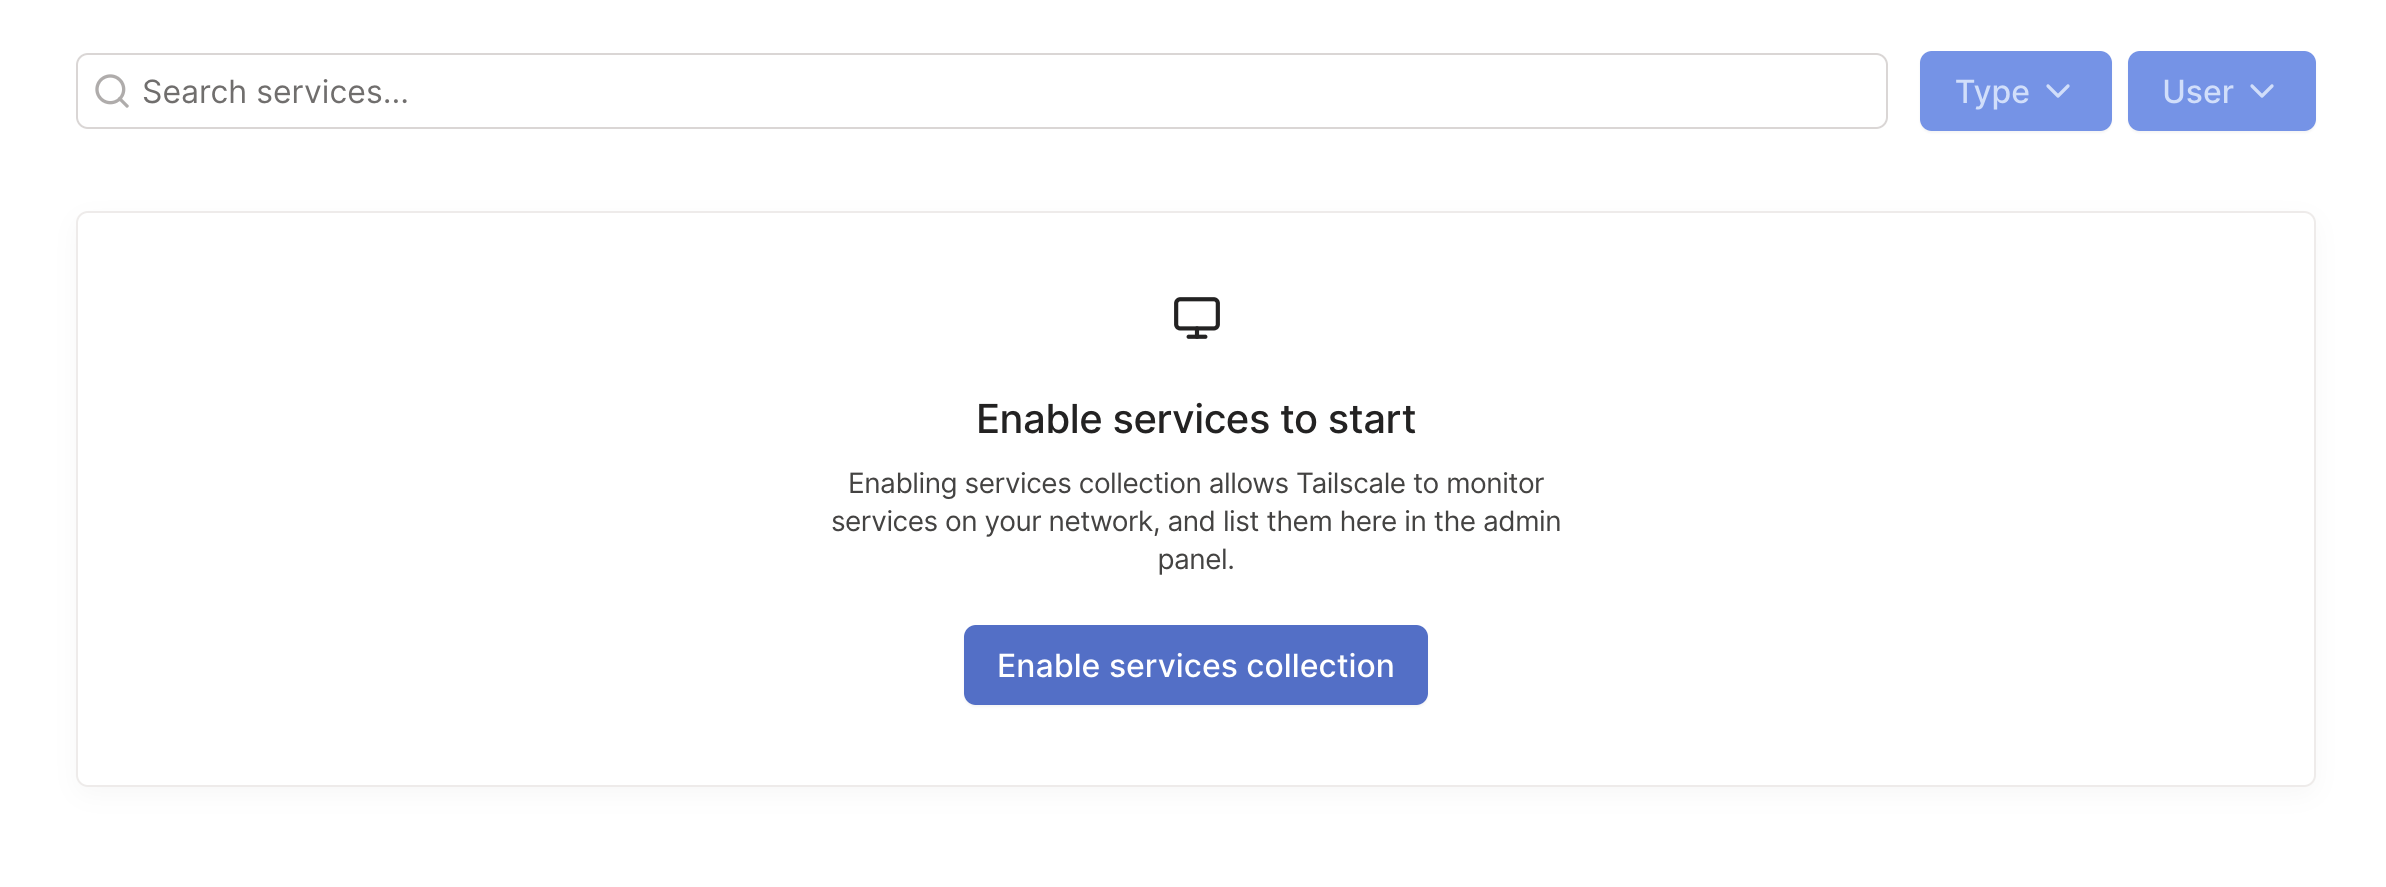 A screenshot of the button to enable services collection.